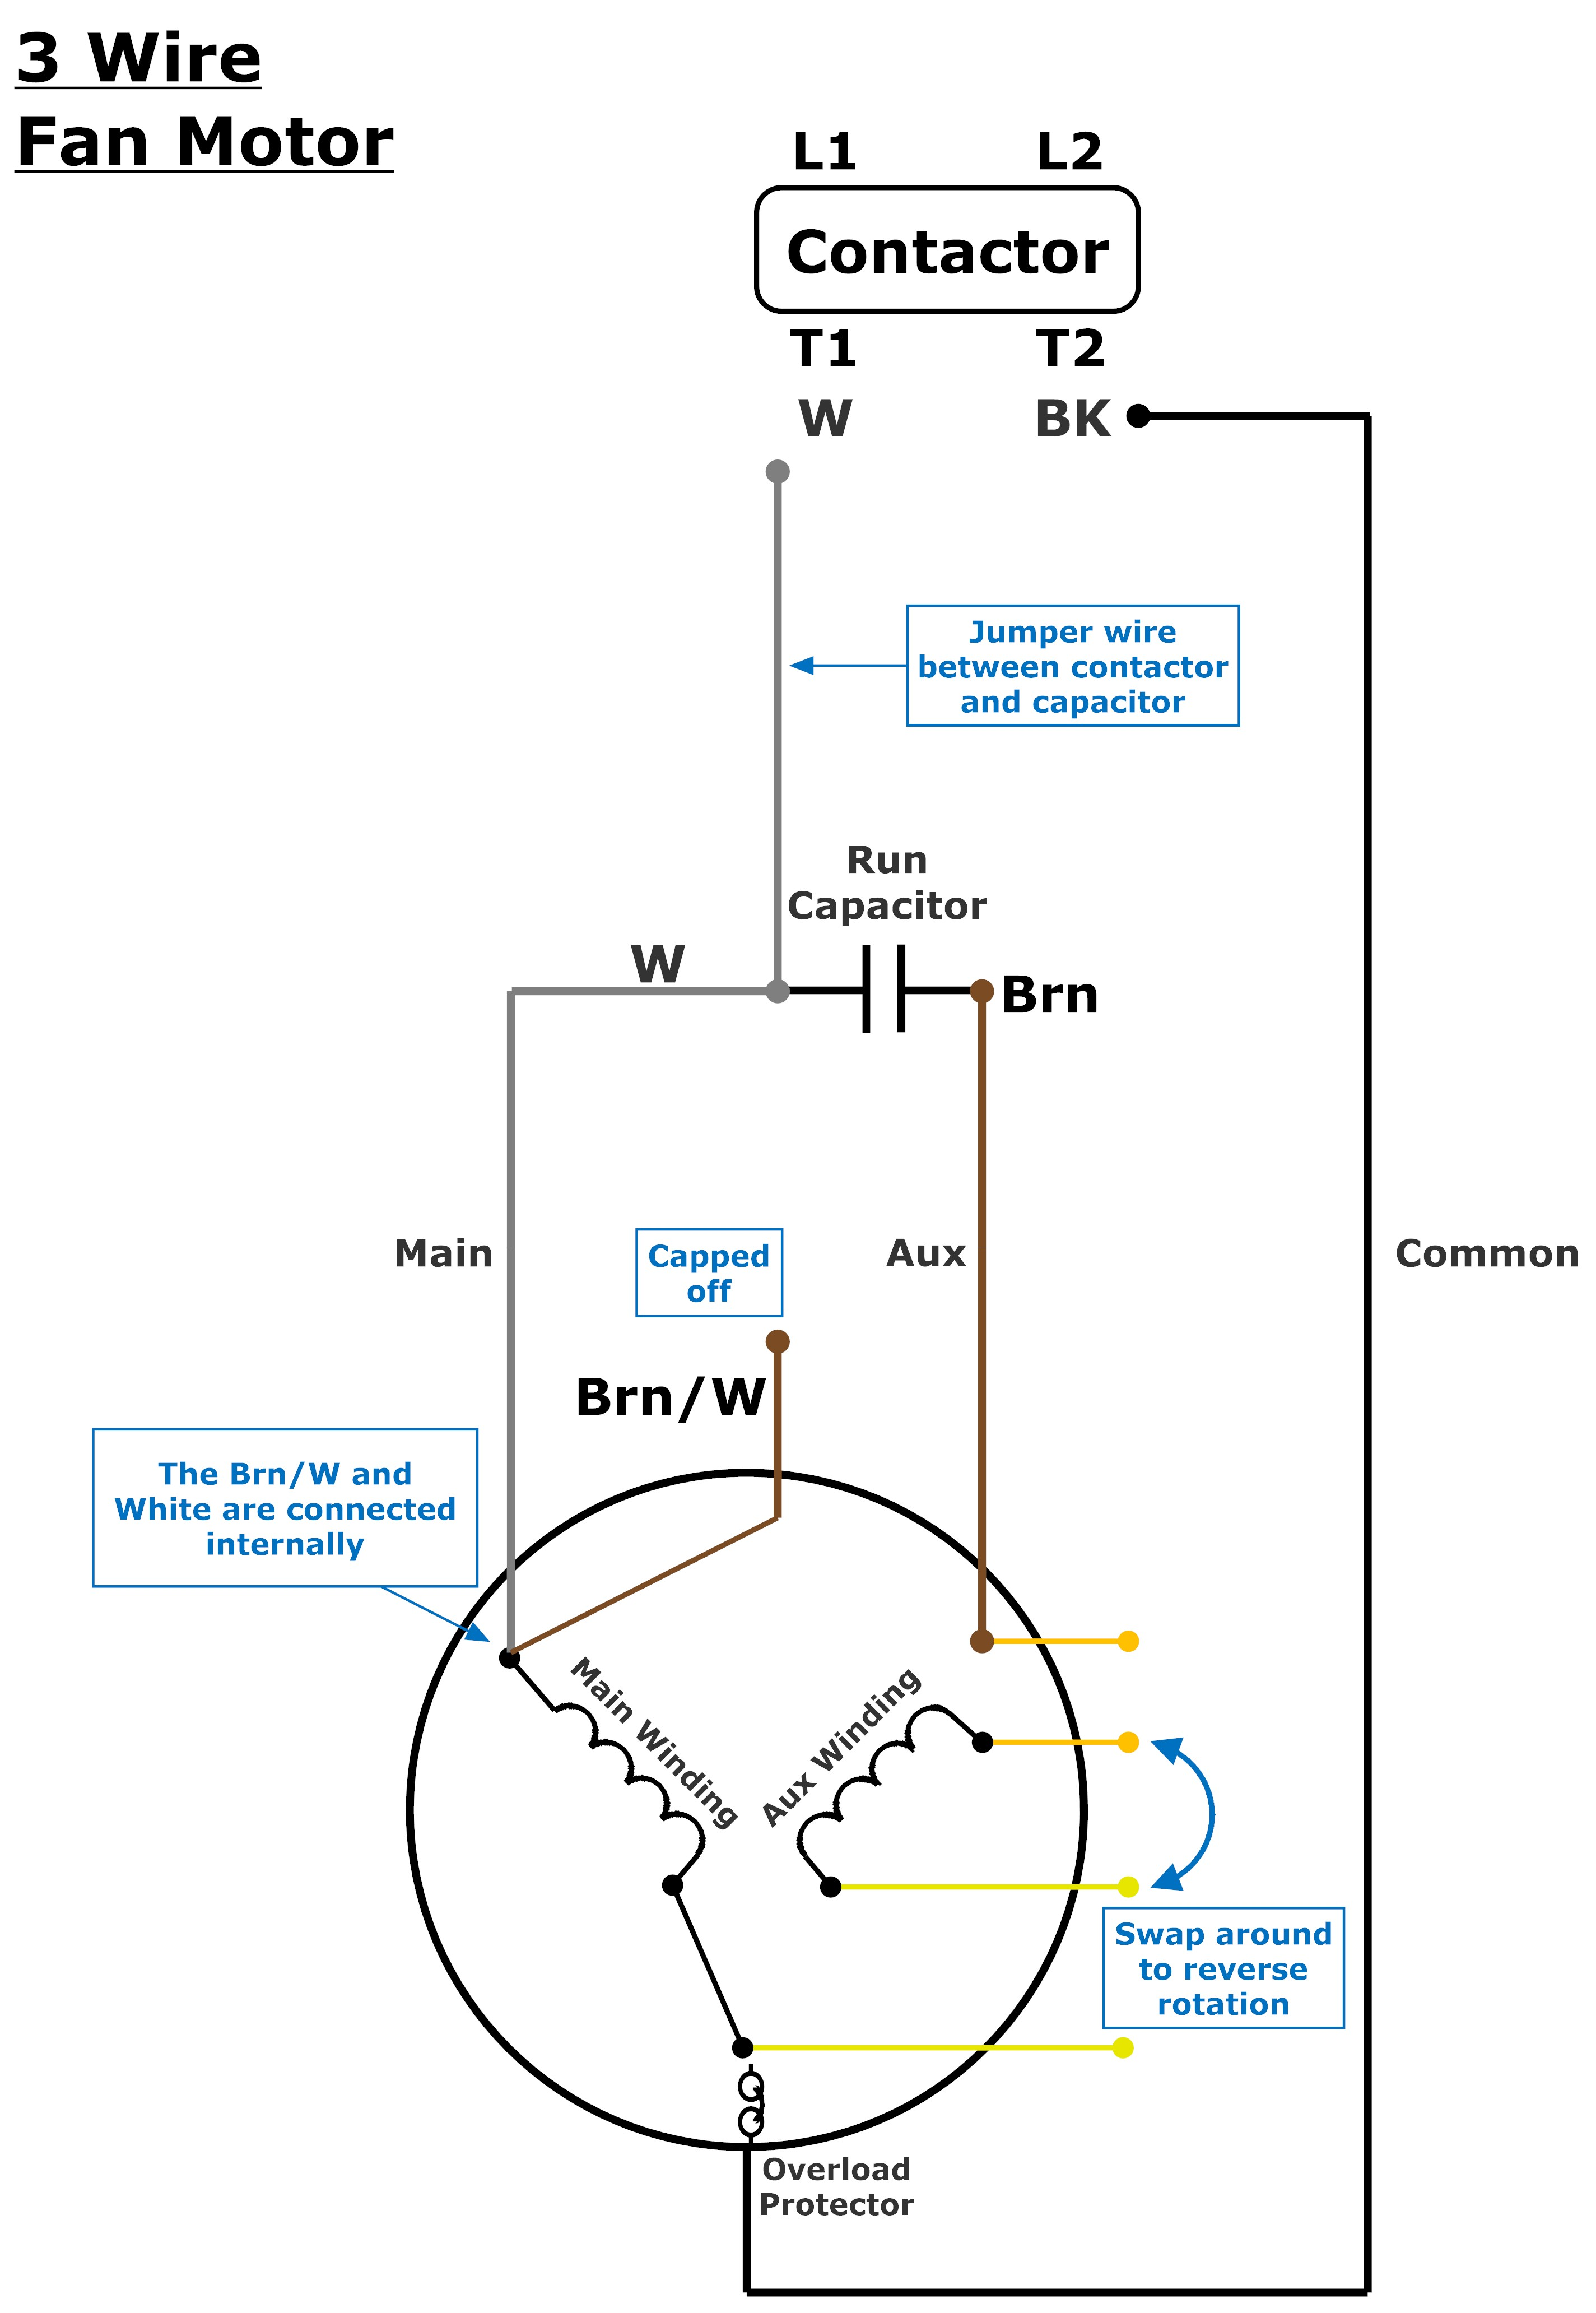 Electric Fan Wiring Diagram Capacitor from johnstone.zendesk.com